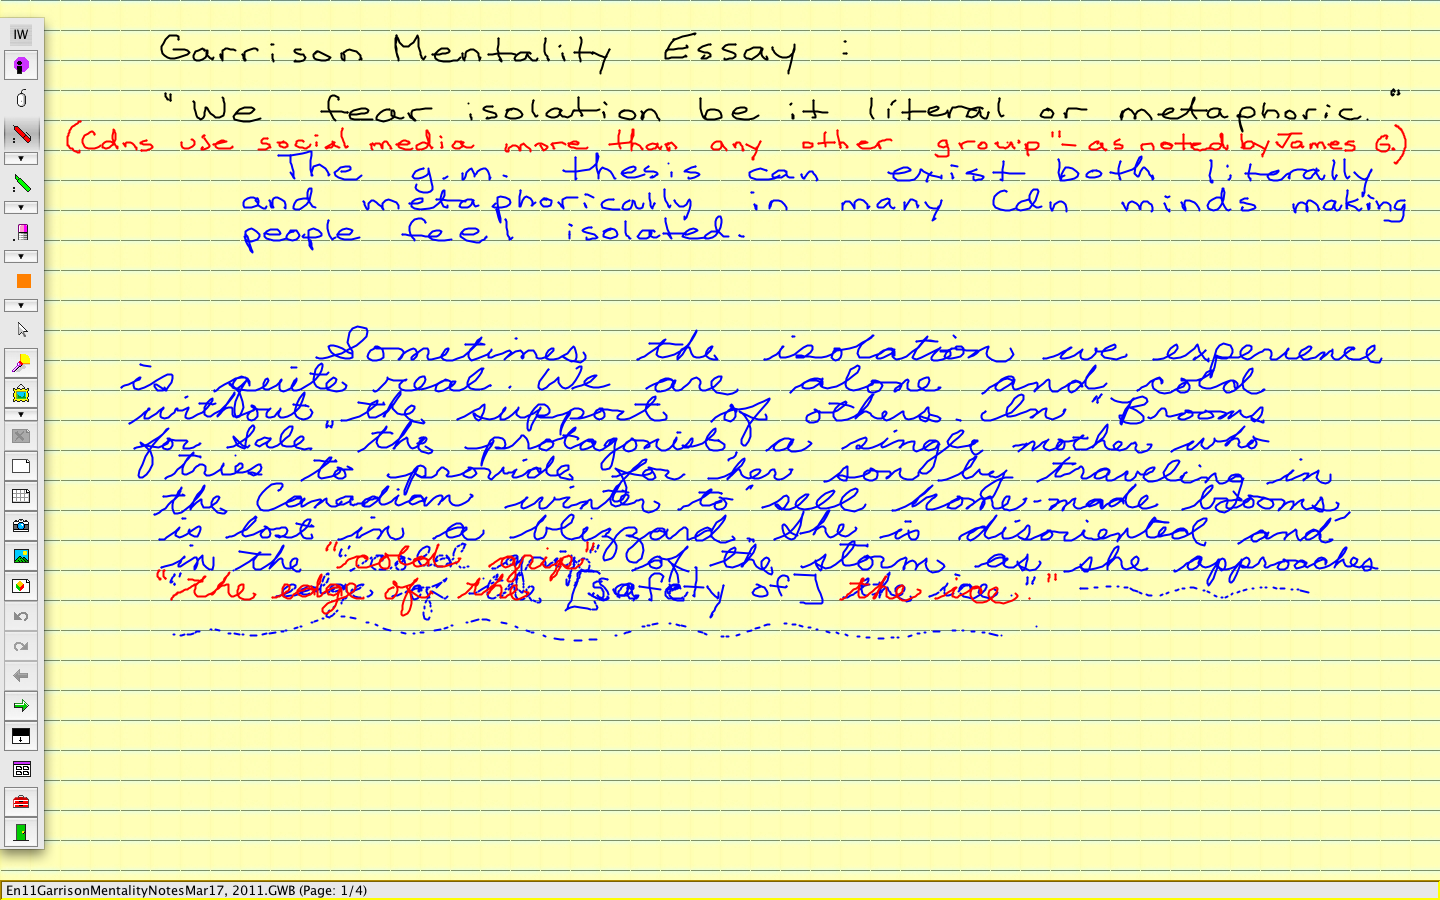 yellow essay Community violence essay college scholarship personal essay yu gi oh dub censorship essay anleitung essay schreiben englische future leaders exchange essay essay descriptive fall wwi veteran interview essay beatles remastered comparison essay quoting dialogue in an essay dissertationspreis dfhatqc introduction of a master dissertation.